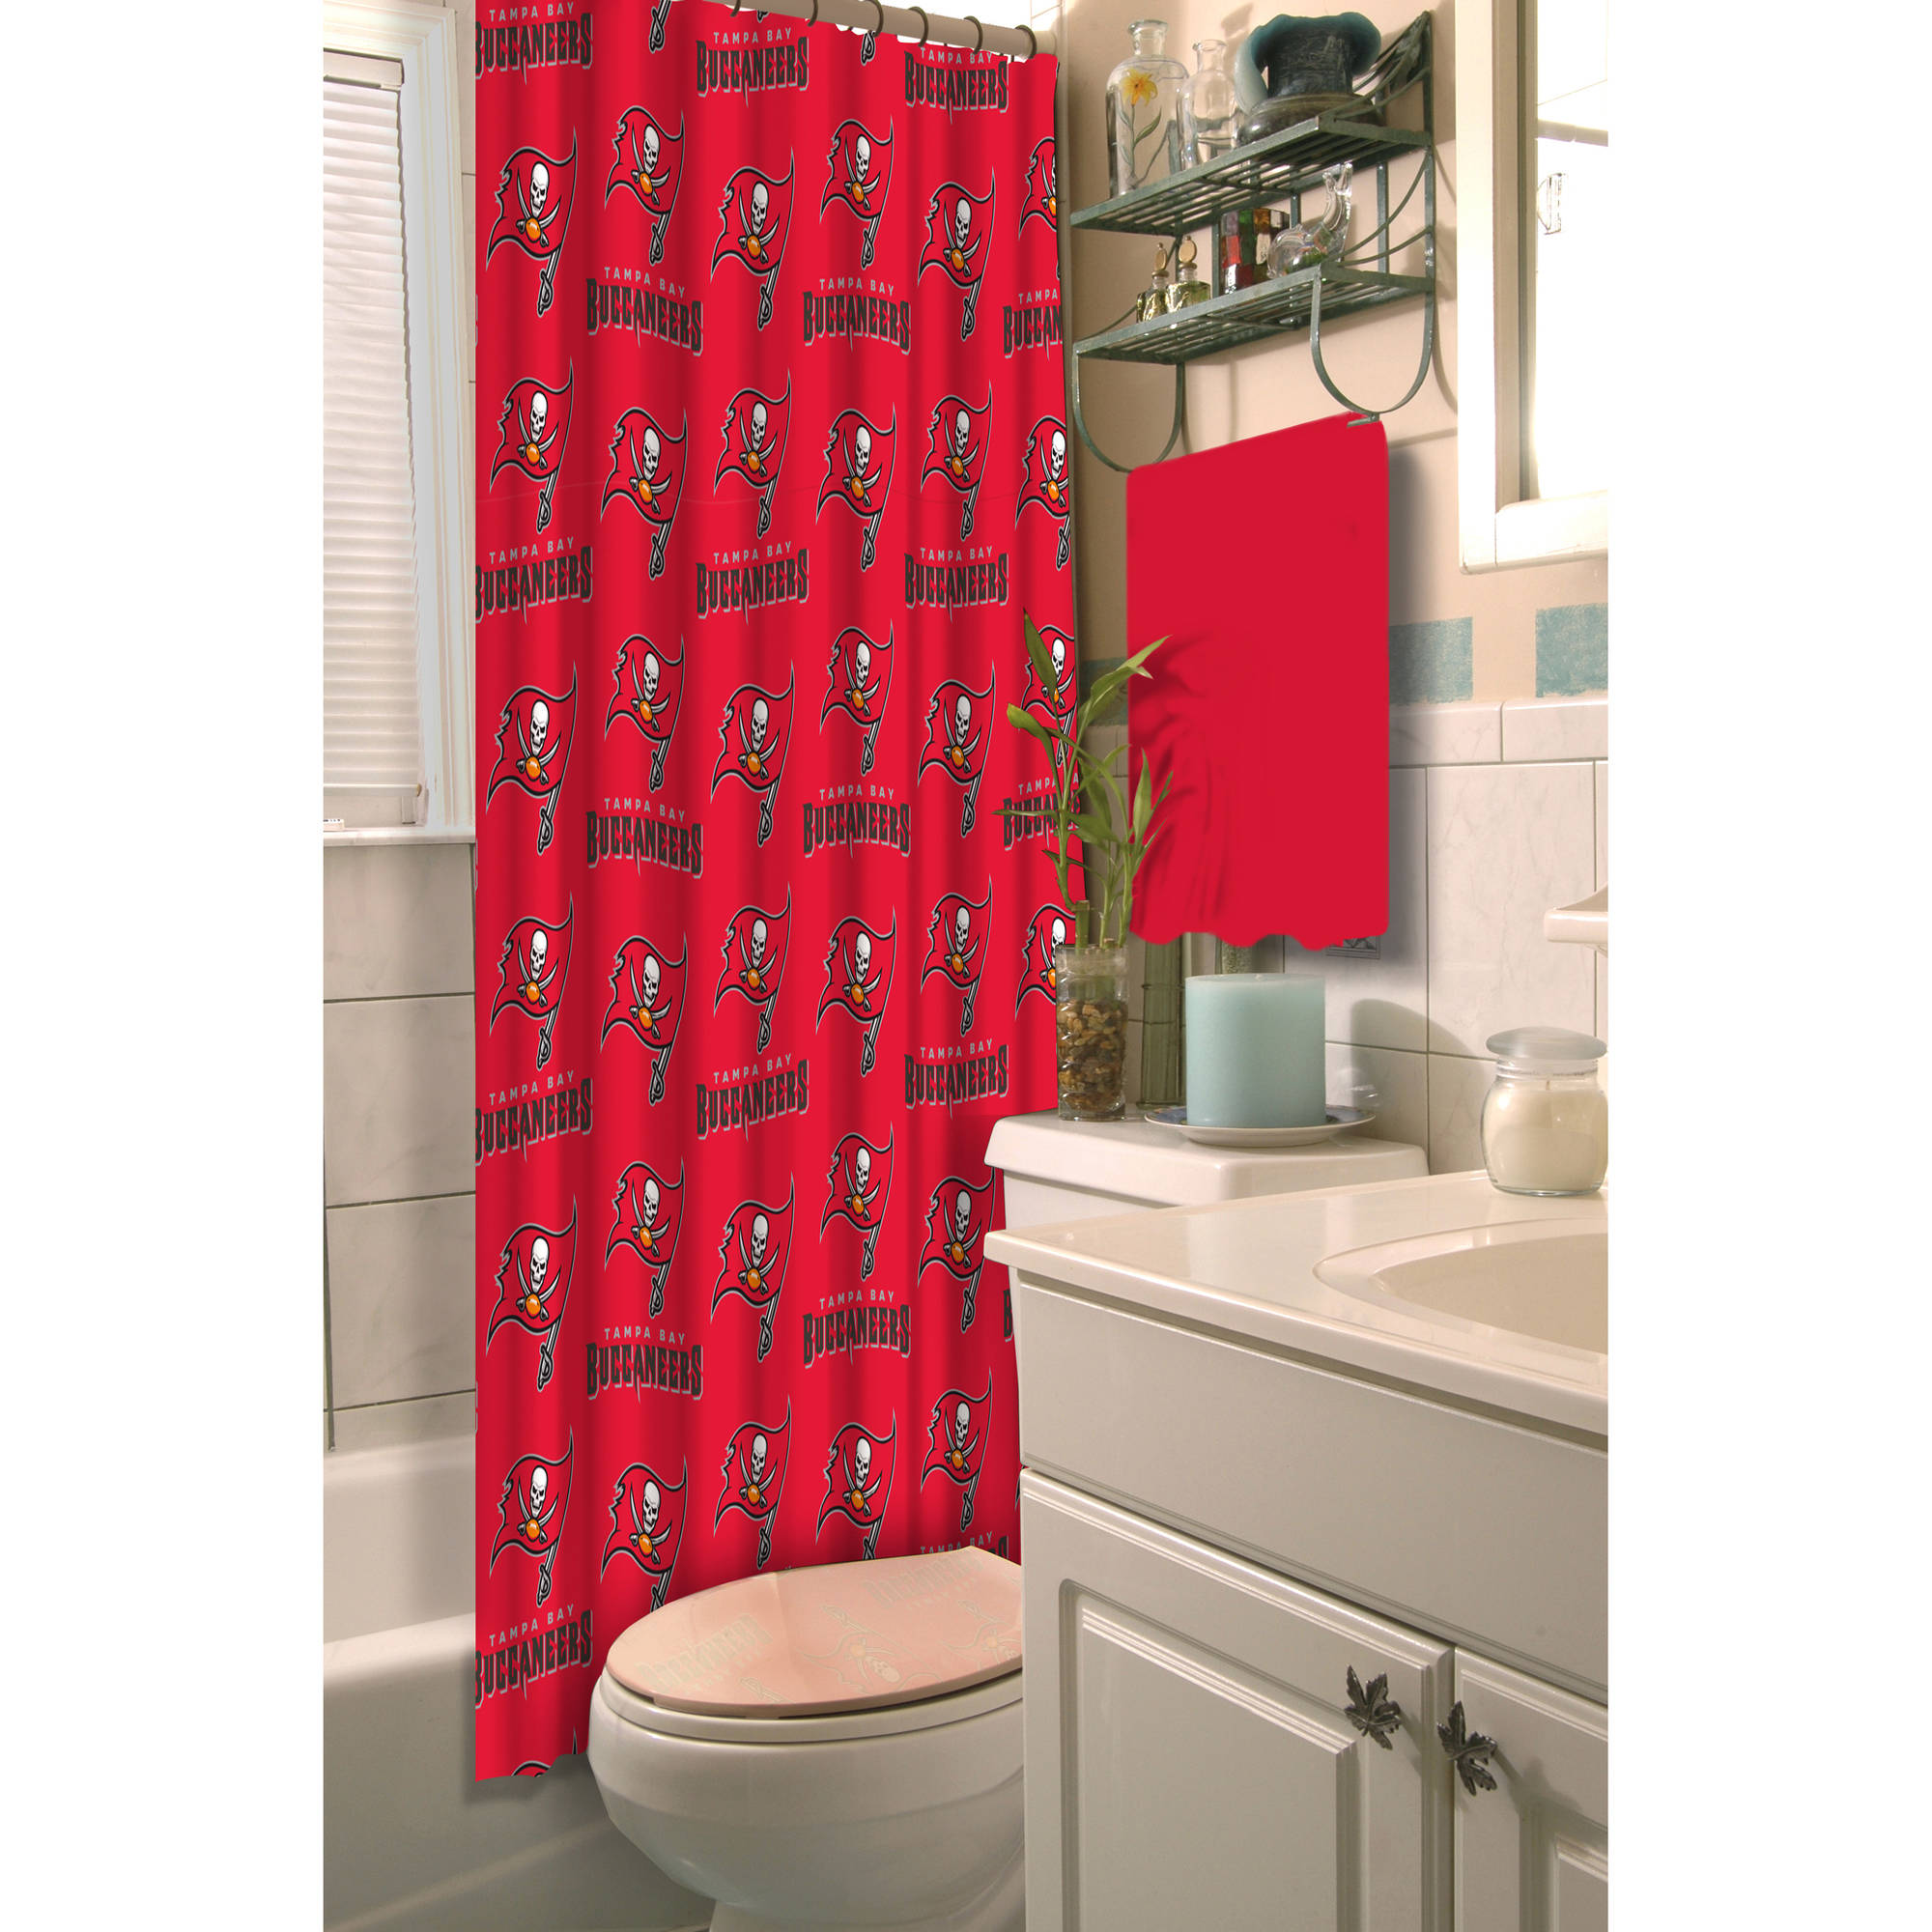 NFL Tampa Bay Buccaneers Decorative Bath Collection - Shower Curtain